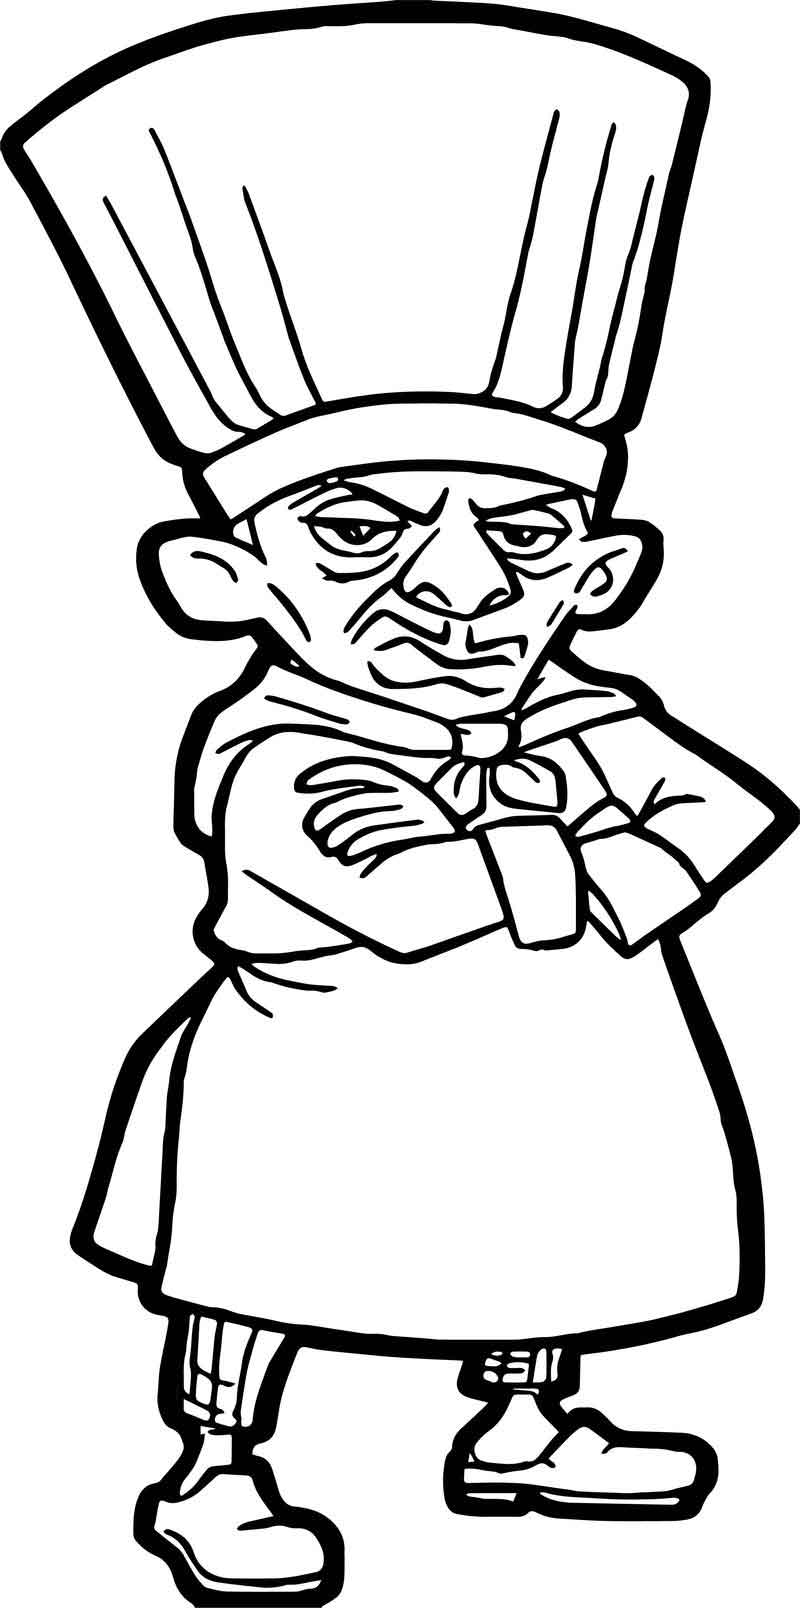 ratatouille coloring pages kids n funcom 55 coloring pages of ratatouille coloring ratatouille pages